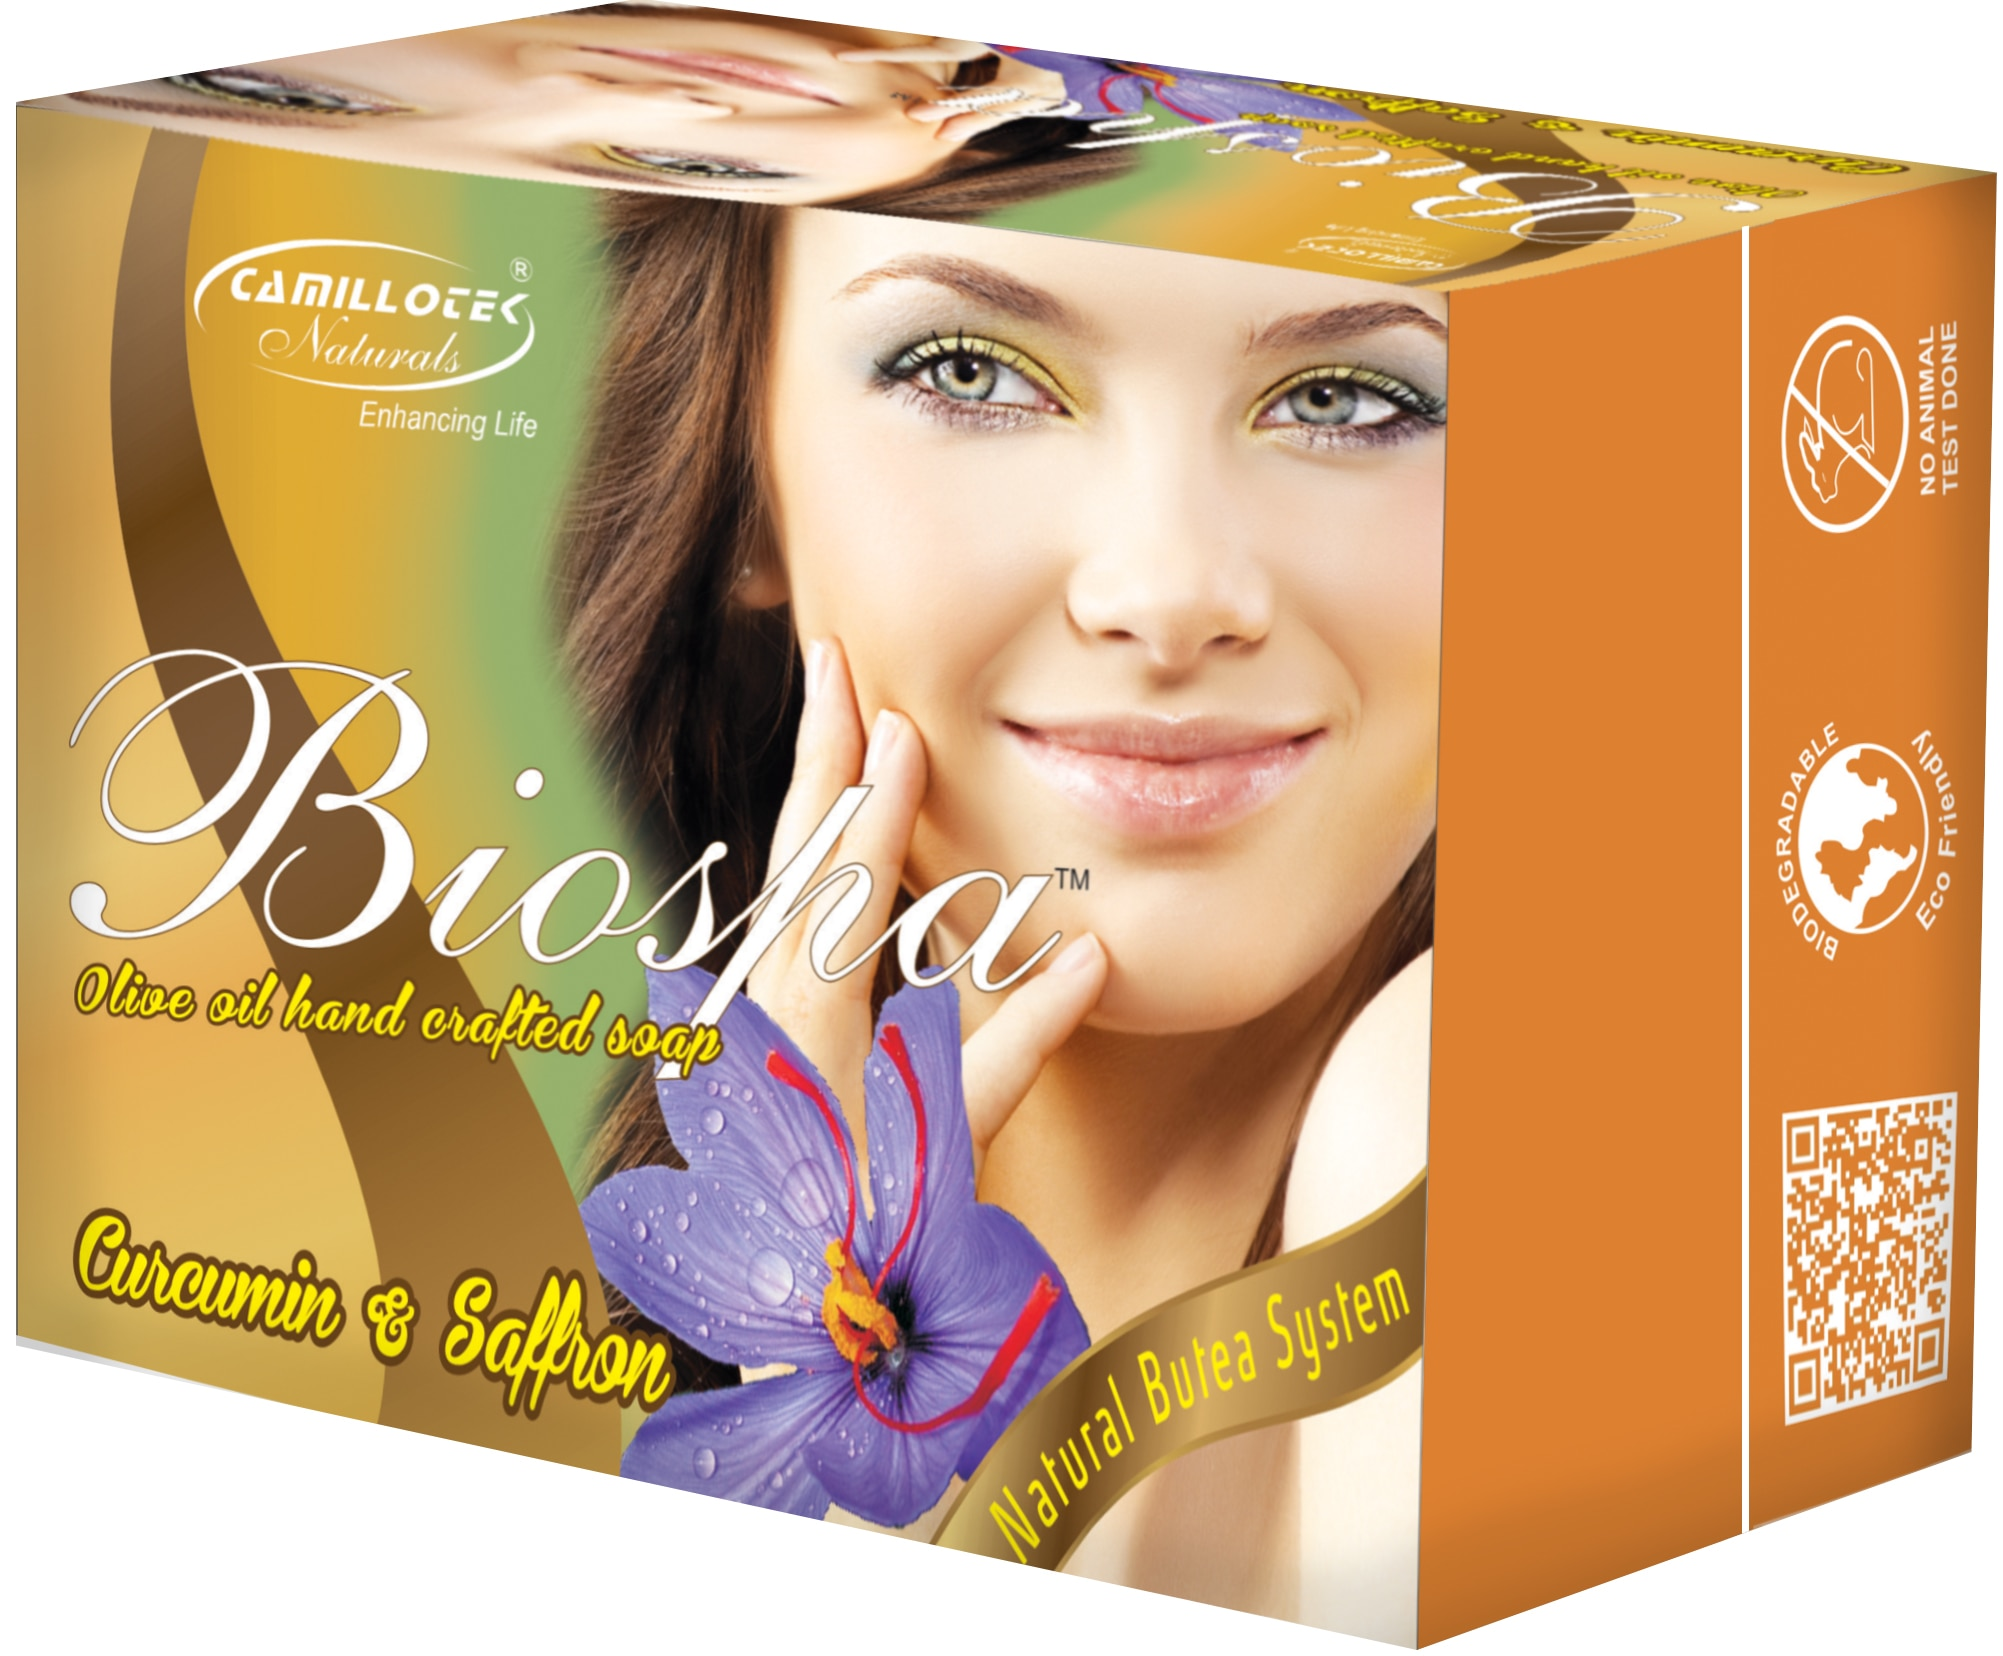 Biospa Soap are contains natural and pure essential oils in order to provide rich aroma.   Furthermore, the range does not contain synthetic fragrances, chemical preservatives, artificial colorants and detergents.   The range is processing in an utmost manner and known for its superior quality.